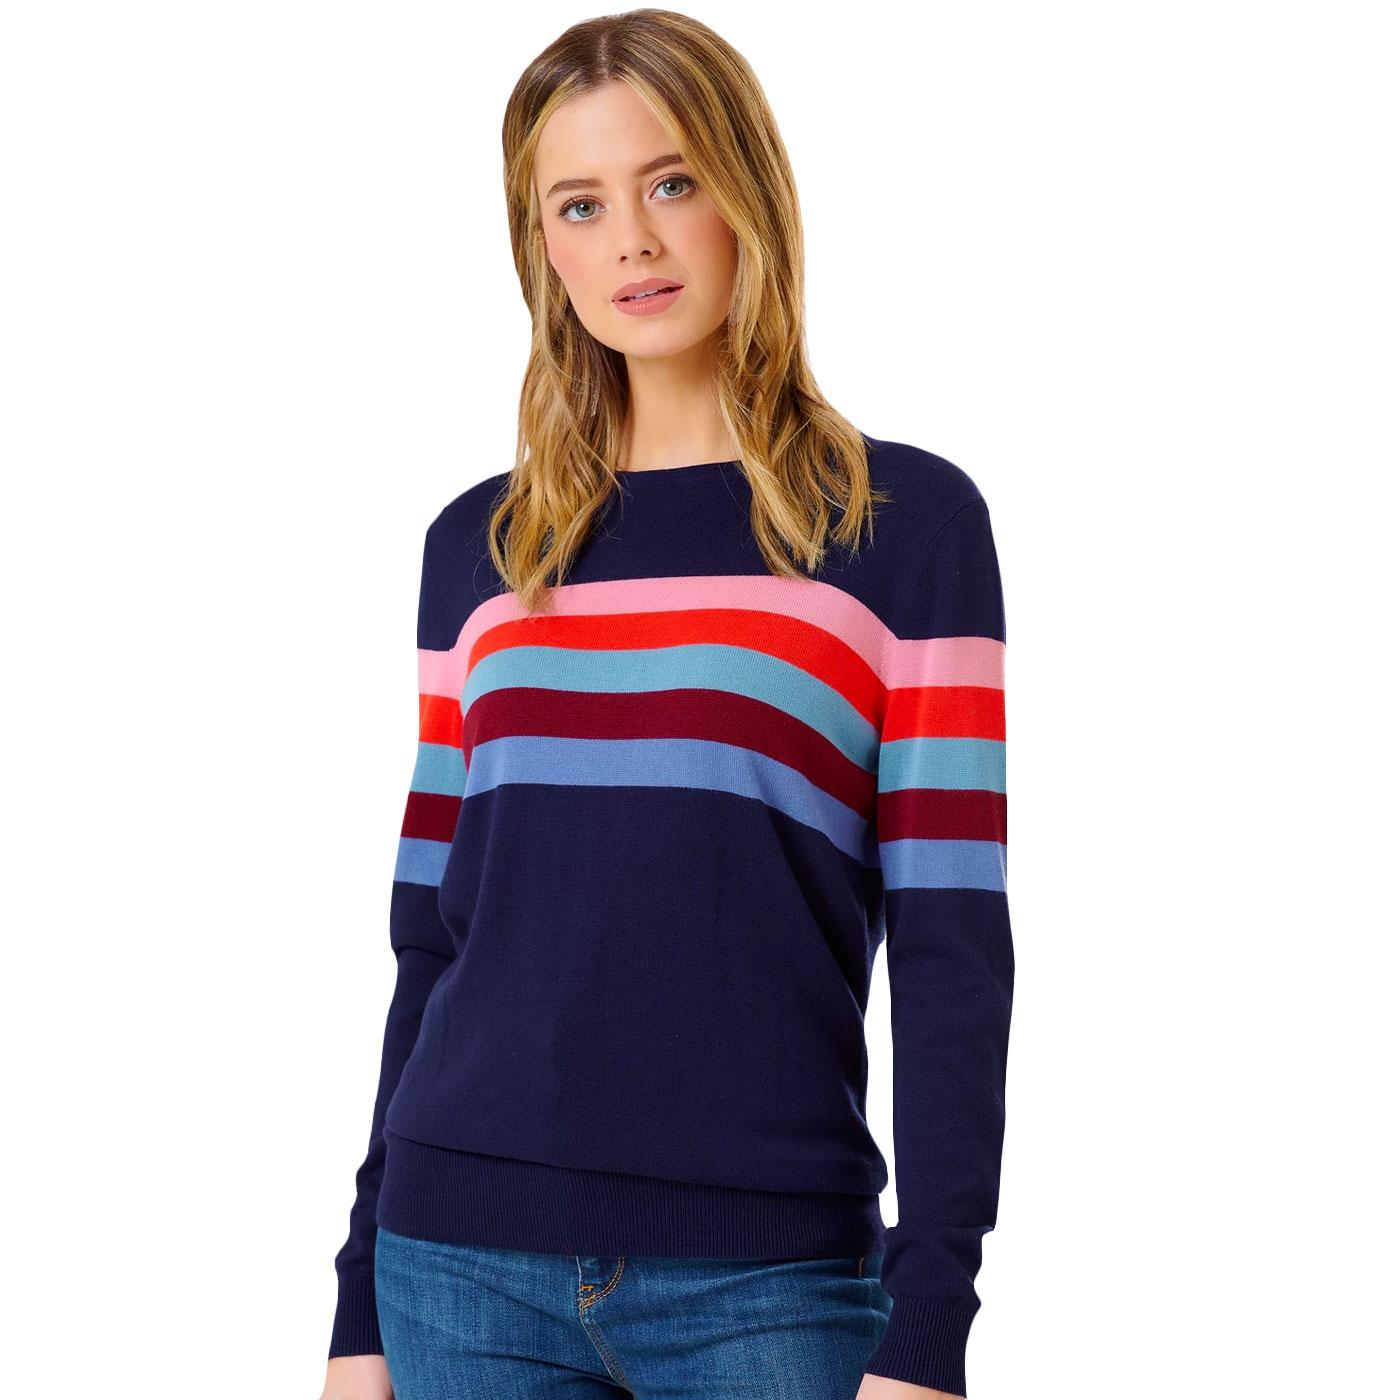 Rita SUGARHILL BRIGHTON Gumball Machine Sweater